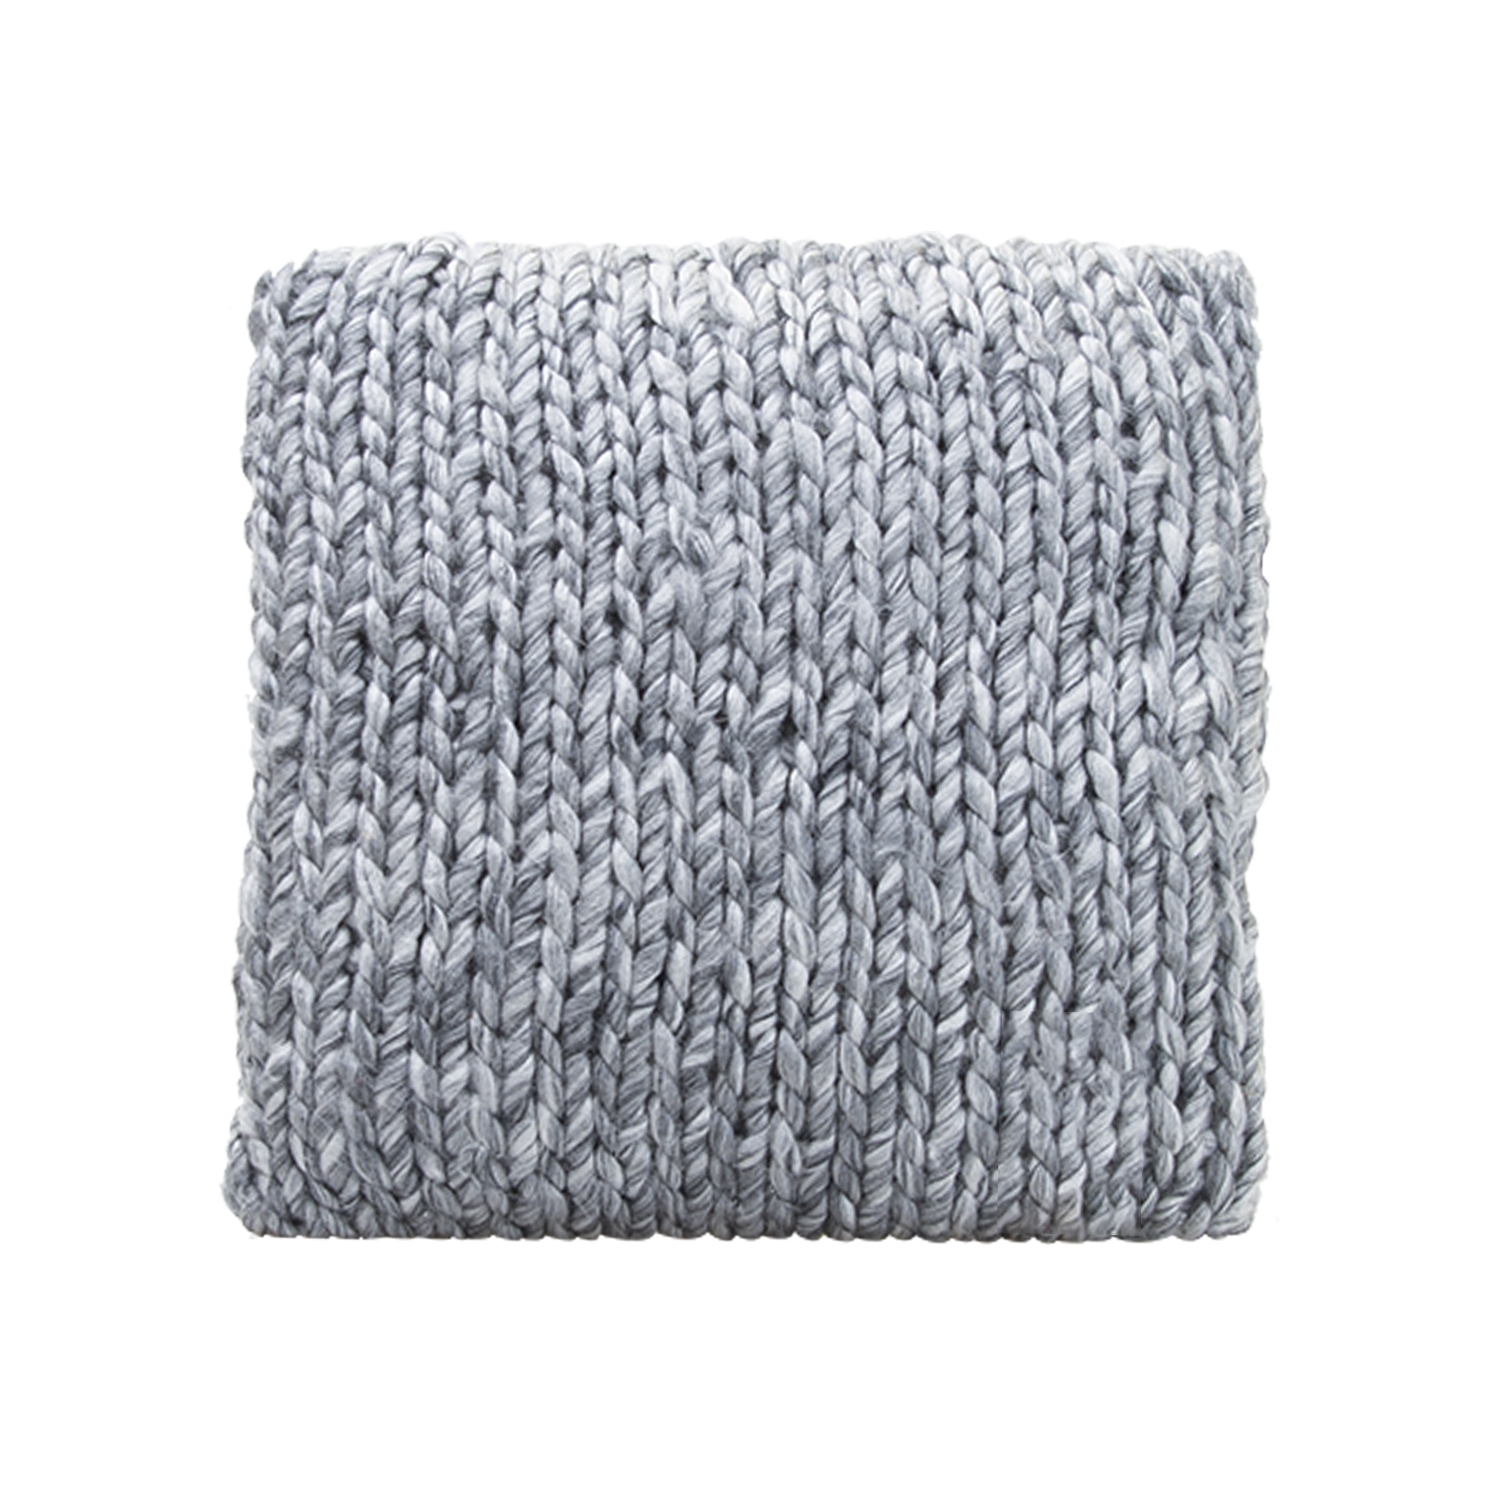 Image of Casa Herring Bone Knit Cushion, Grey Melange